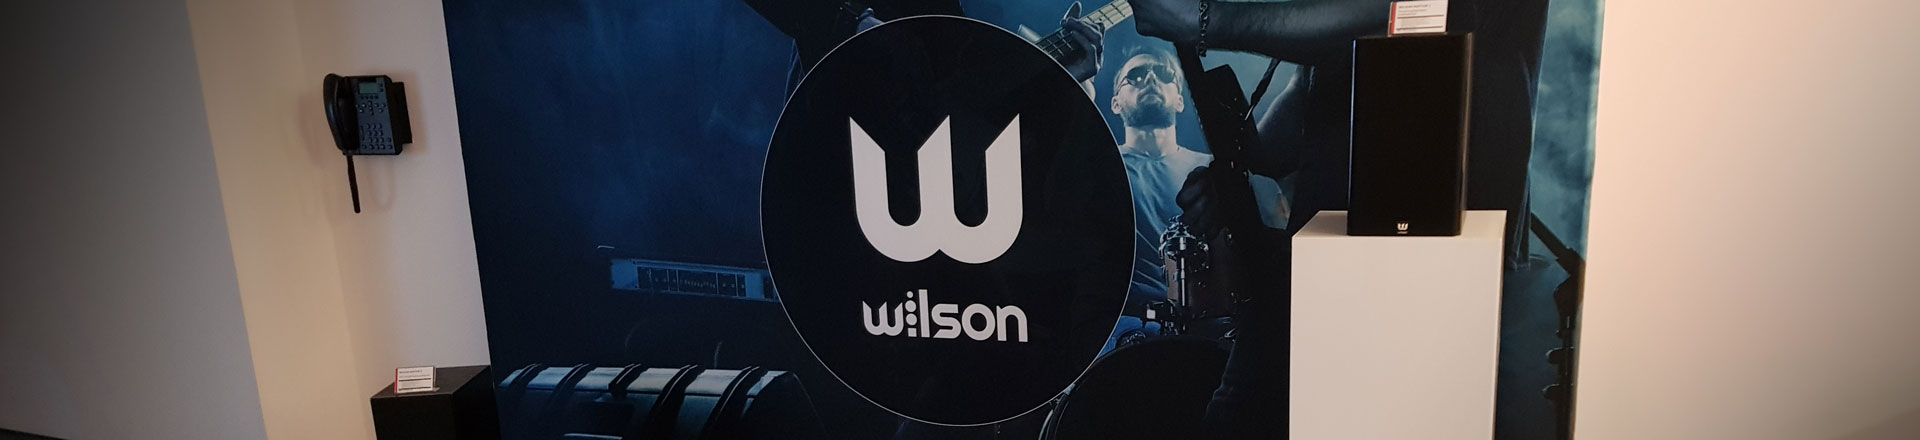 WILSON - Denon Store for Games